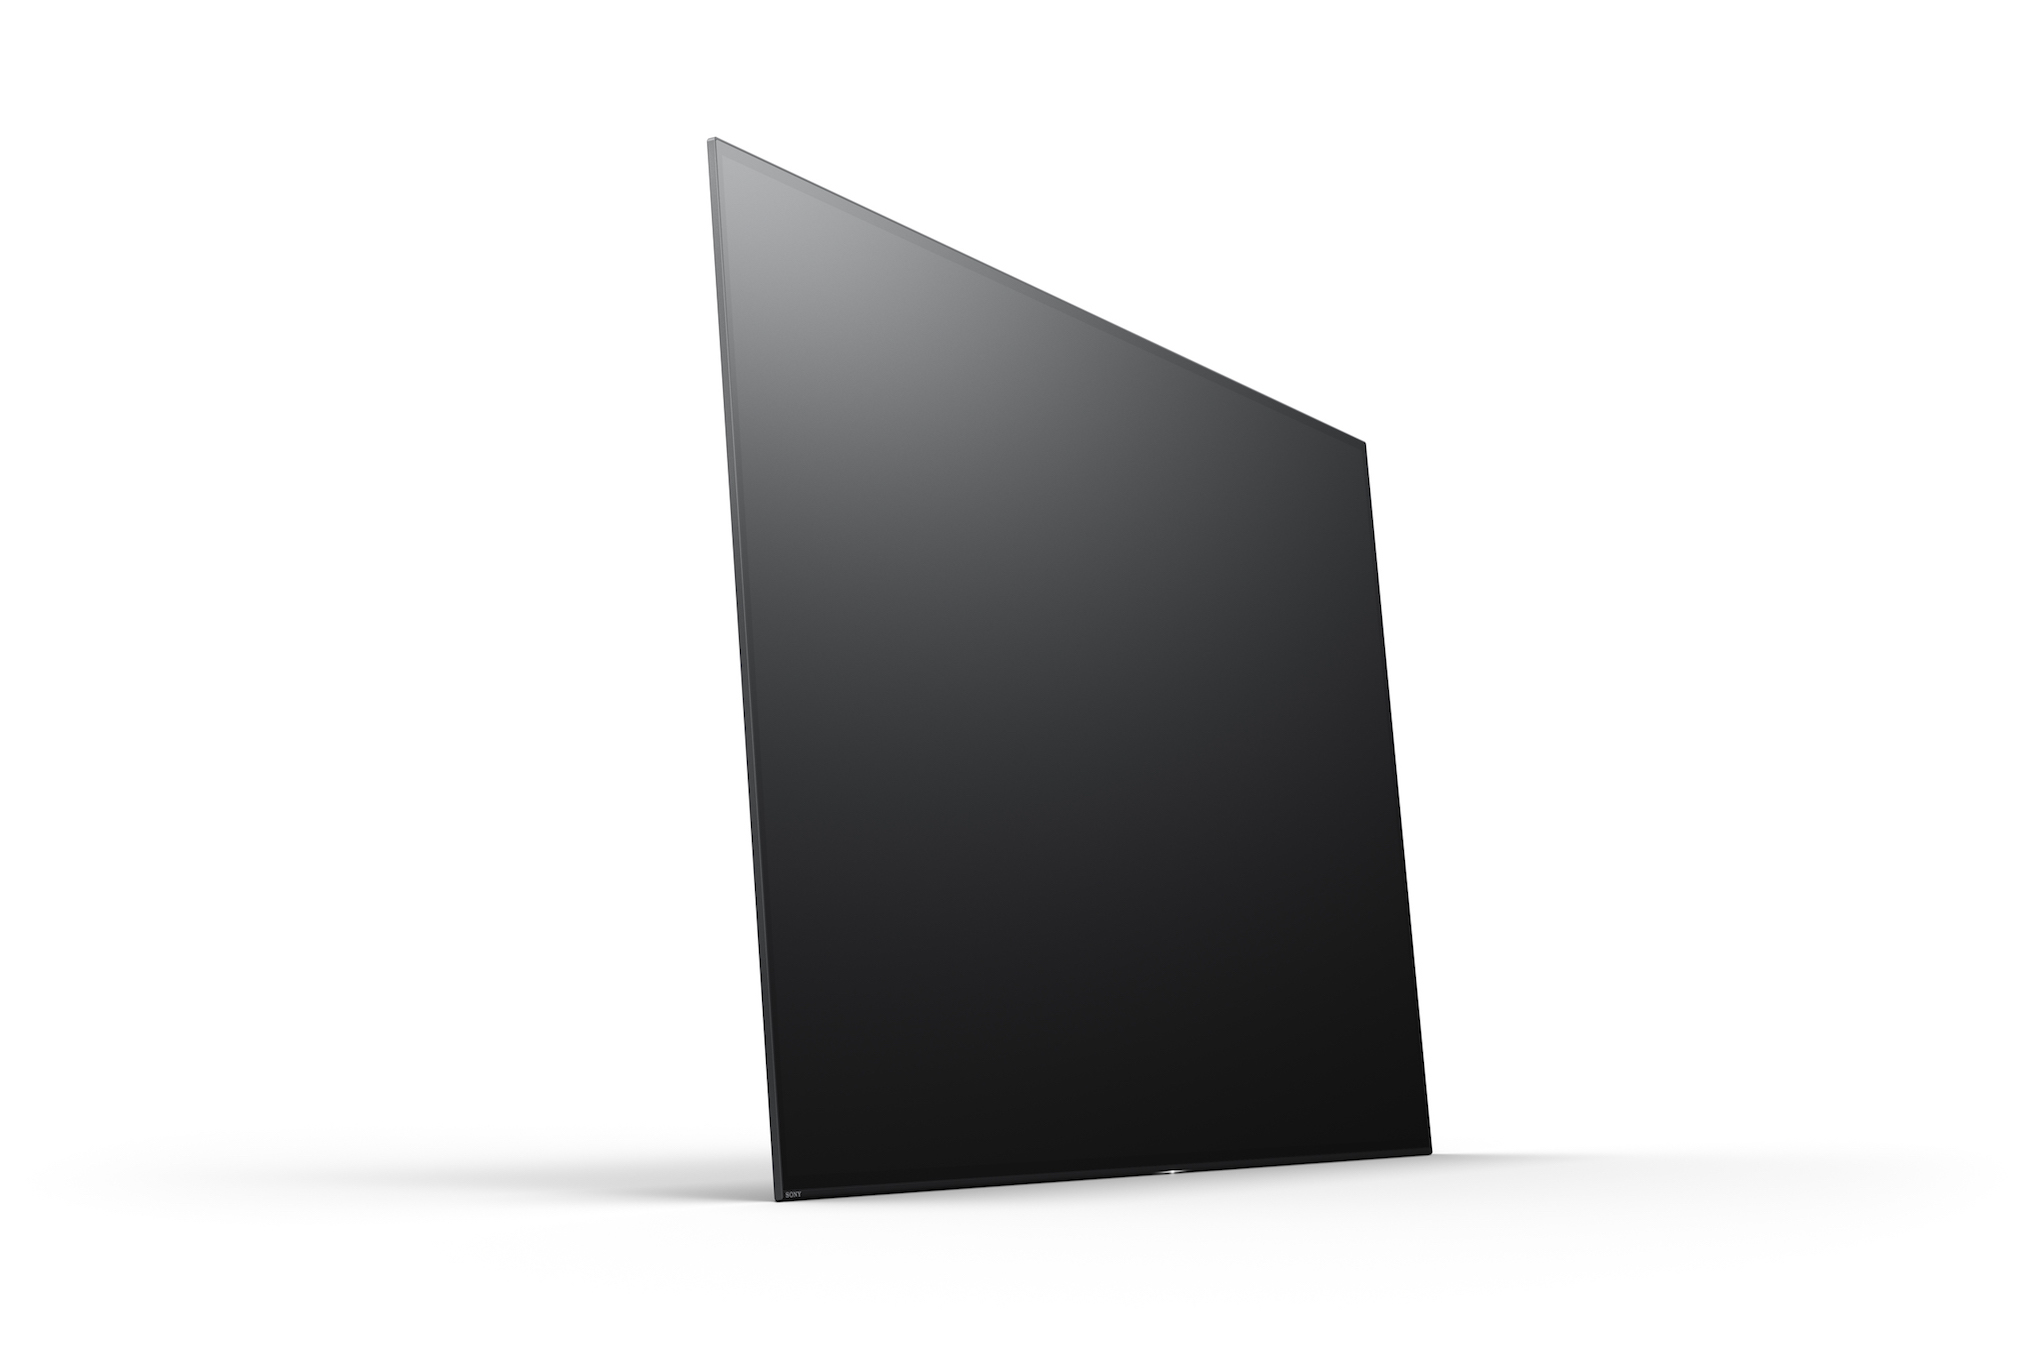 sony tv 4k oled. sony\u0027s also refreshing its led tv lineup with new models including the x940e and x930e series. they\u0027ve been upgraded faster performance compared to sony tv 4k oled